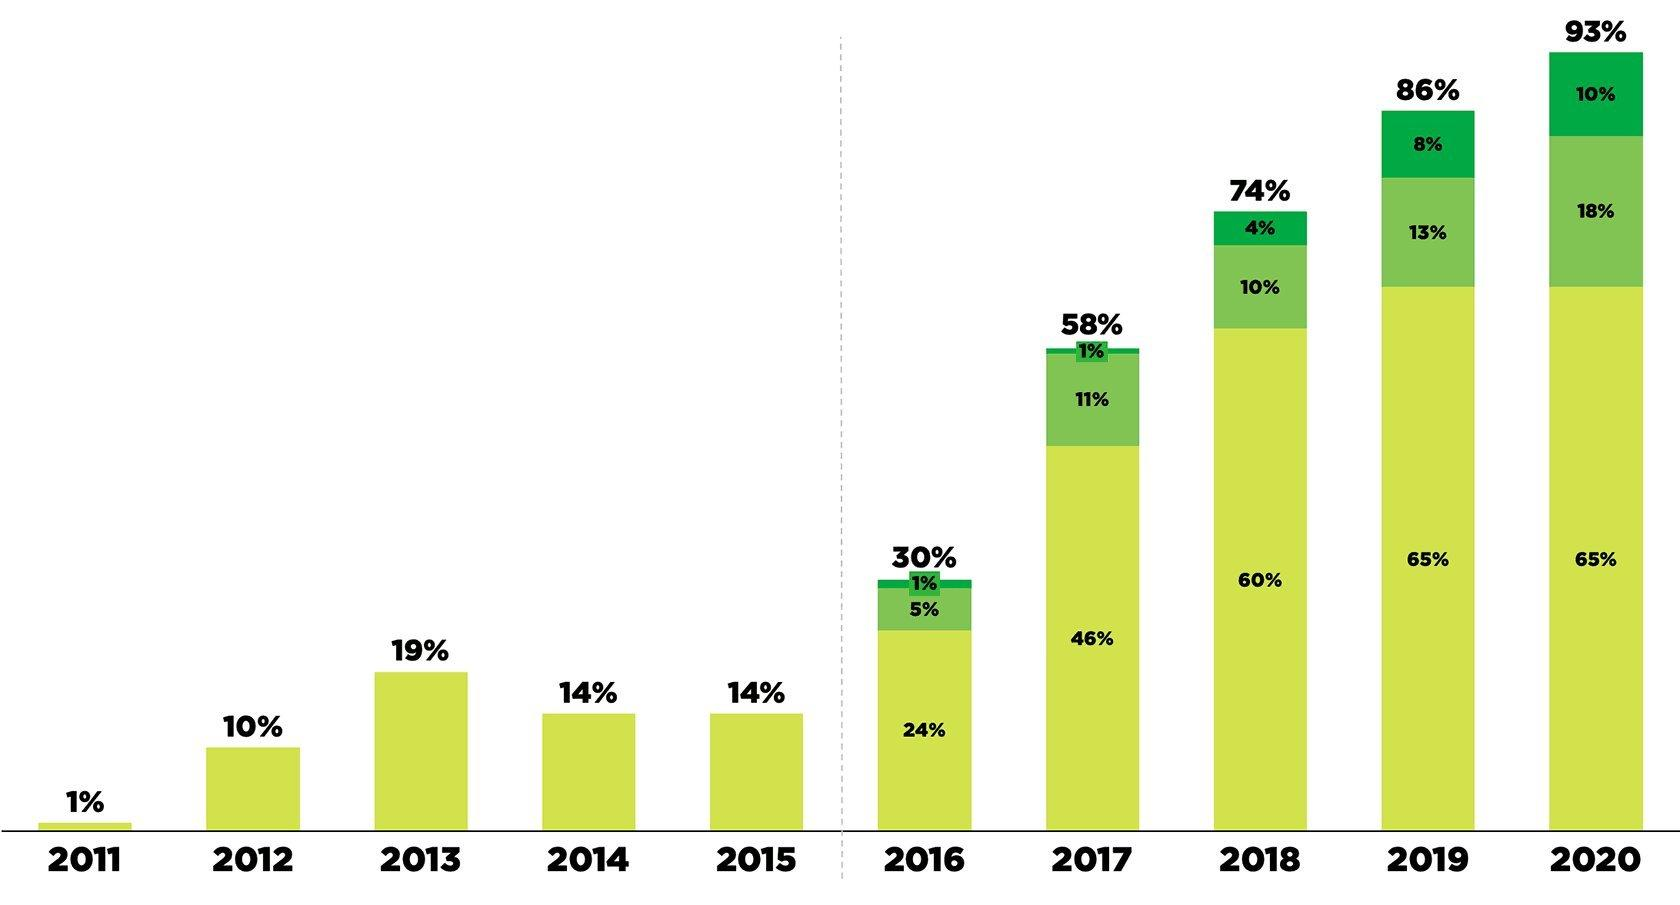 Bar graph on usage of sustainable materials from 2011 to 2020 in our main fabrics